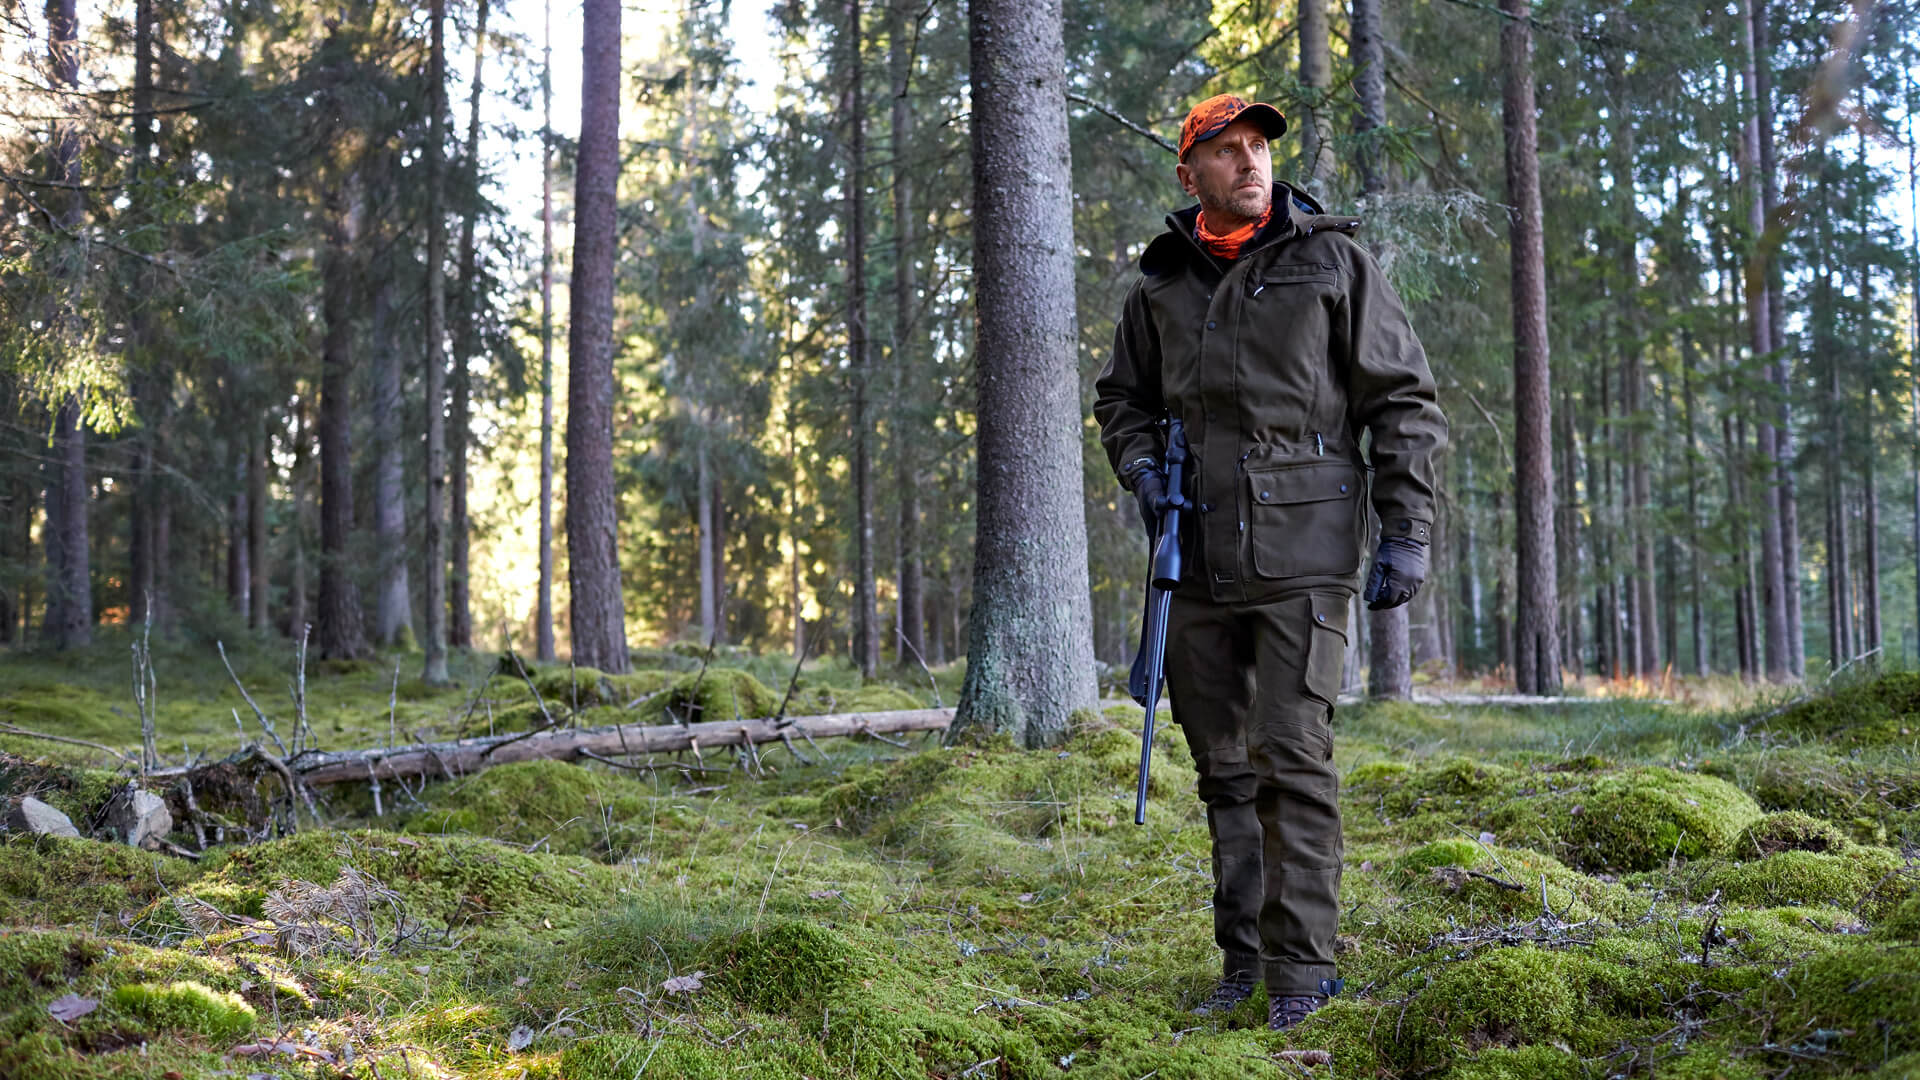 Hunter in the forest on big game hunting